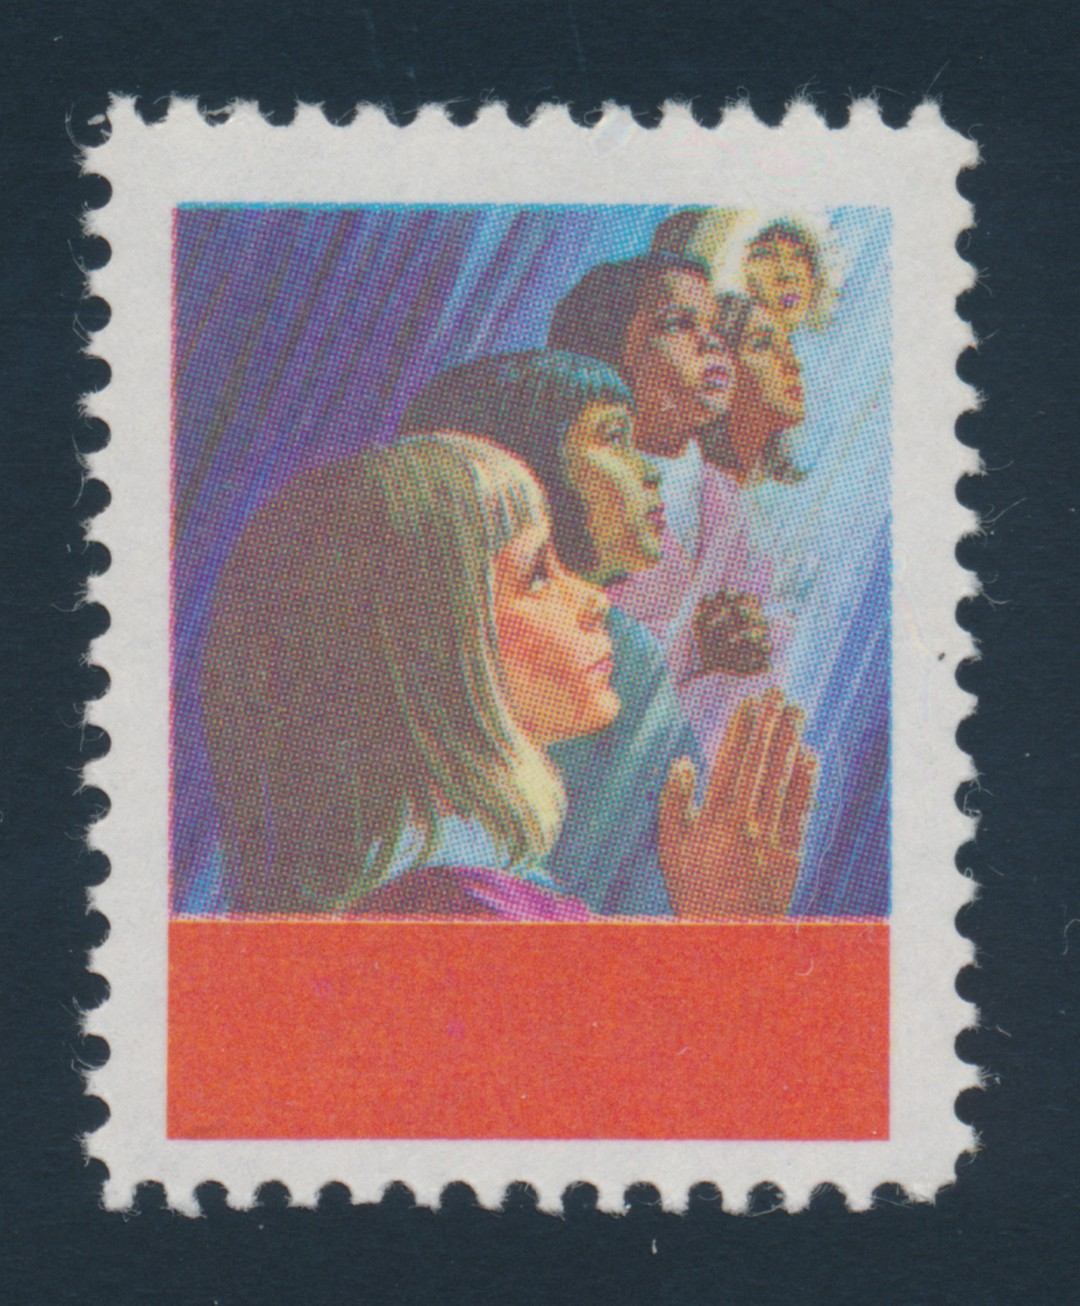 Lot 341 Canada 503a 1969 6 Cent Christmas Children Praying With Black Colour Omitted Mint Never Hinged And A Very Fine Dramatic Error